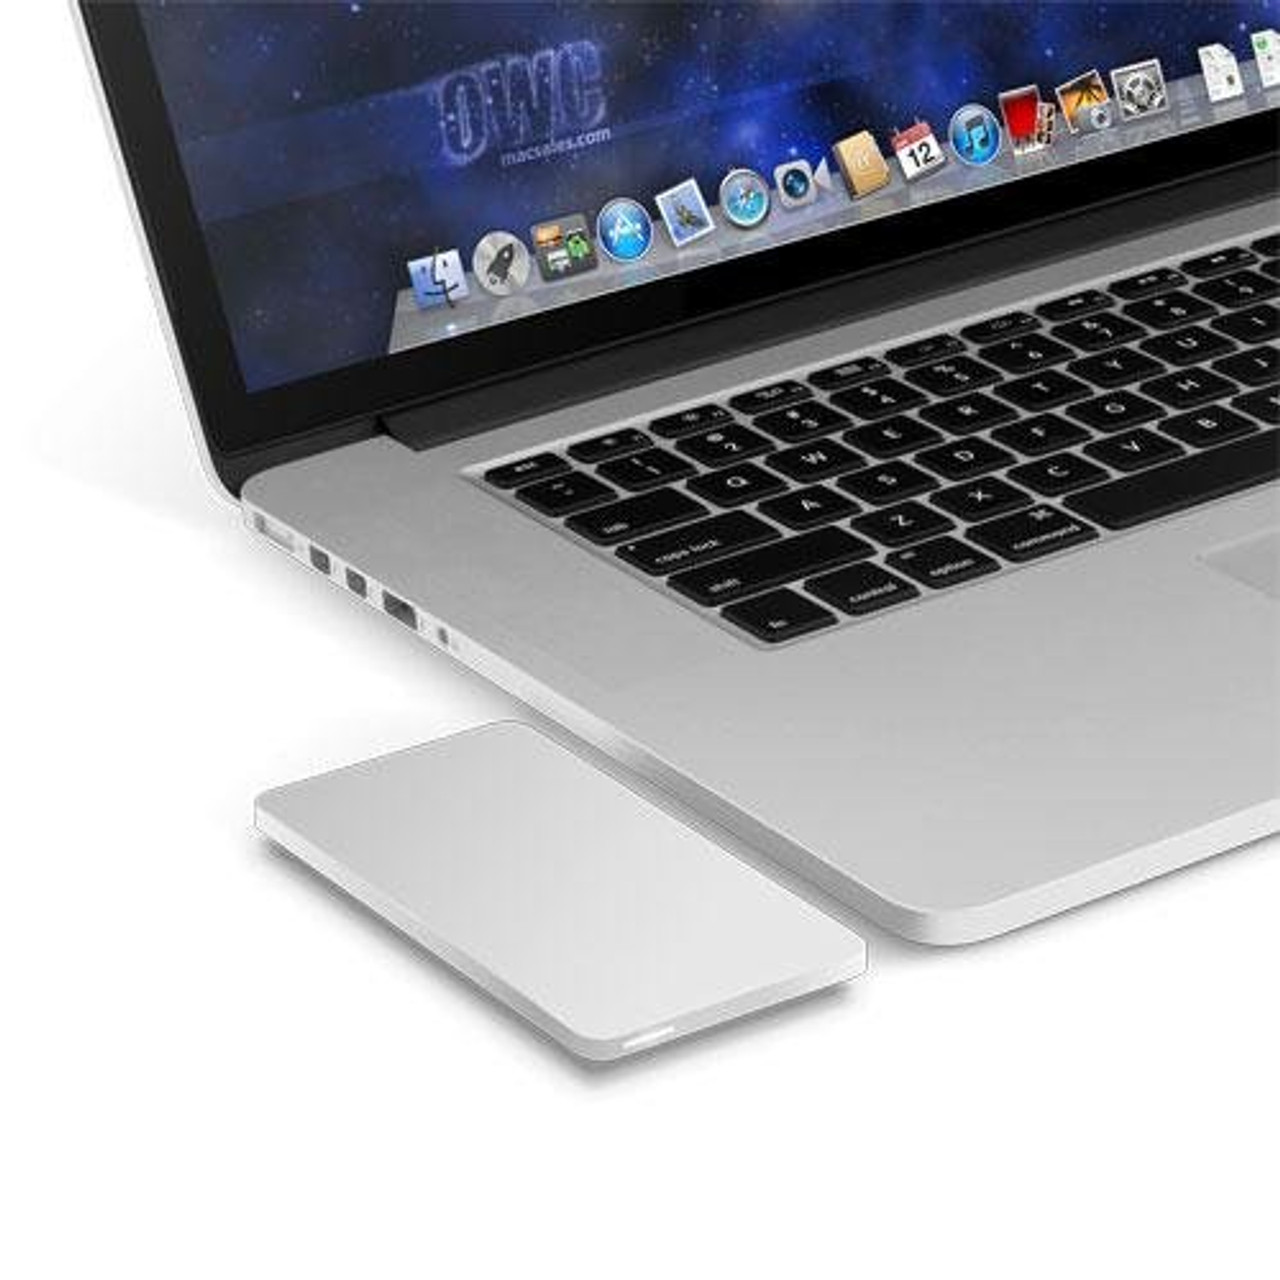 OWC Aura N2 1.0TB Solid-State Drive with Envoy Pro enclosure for select 2013 and later Macs